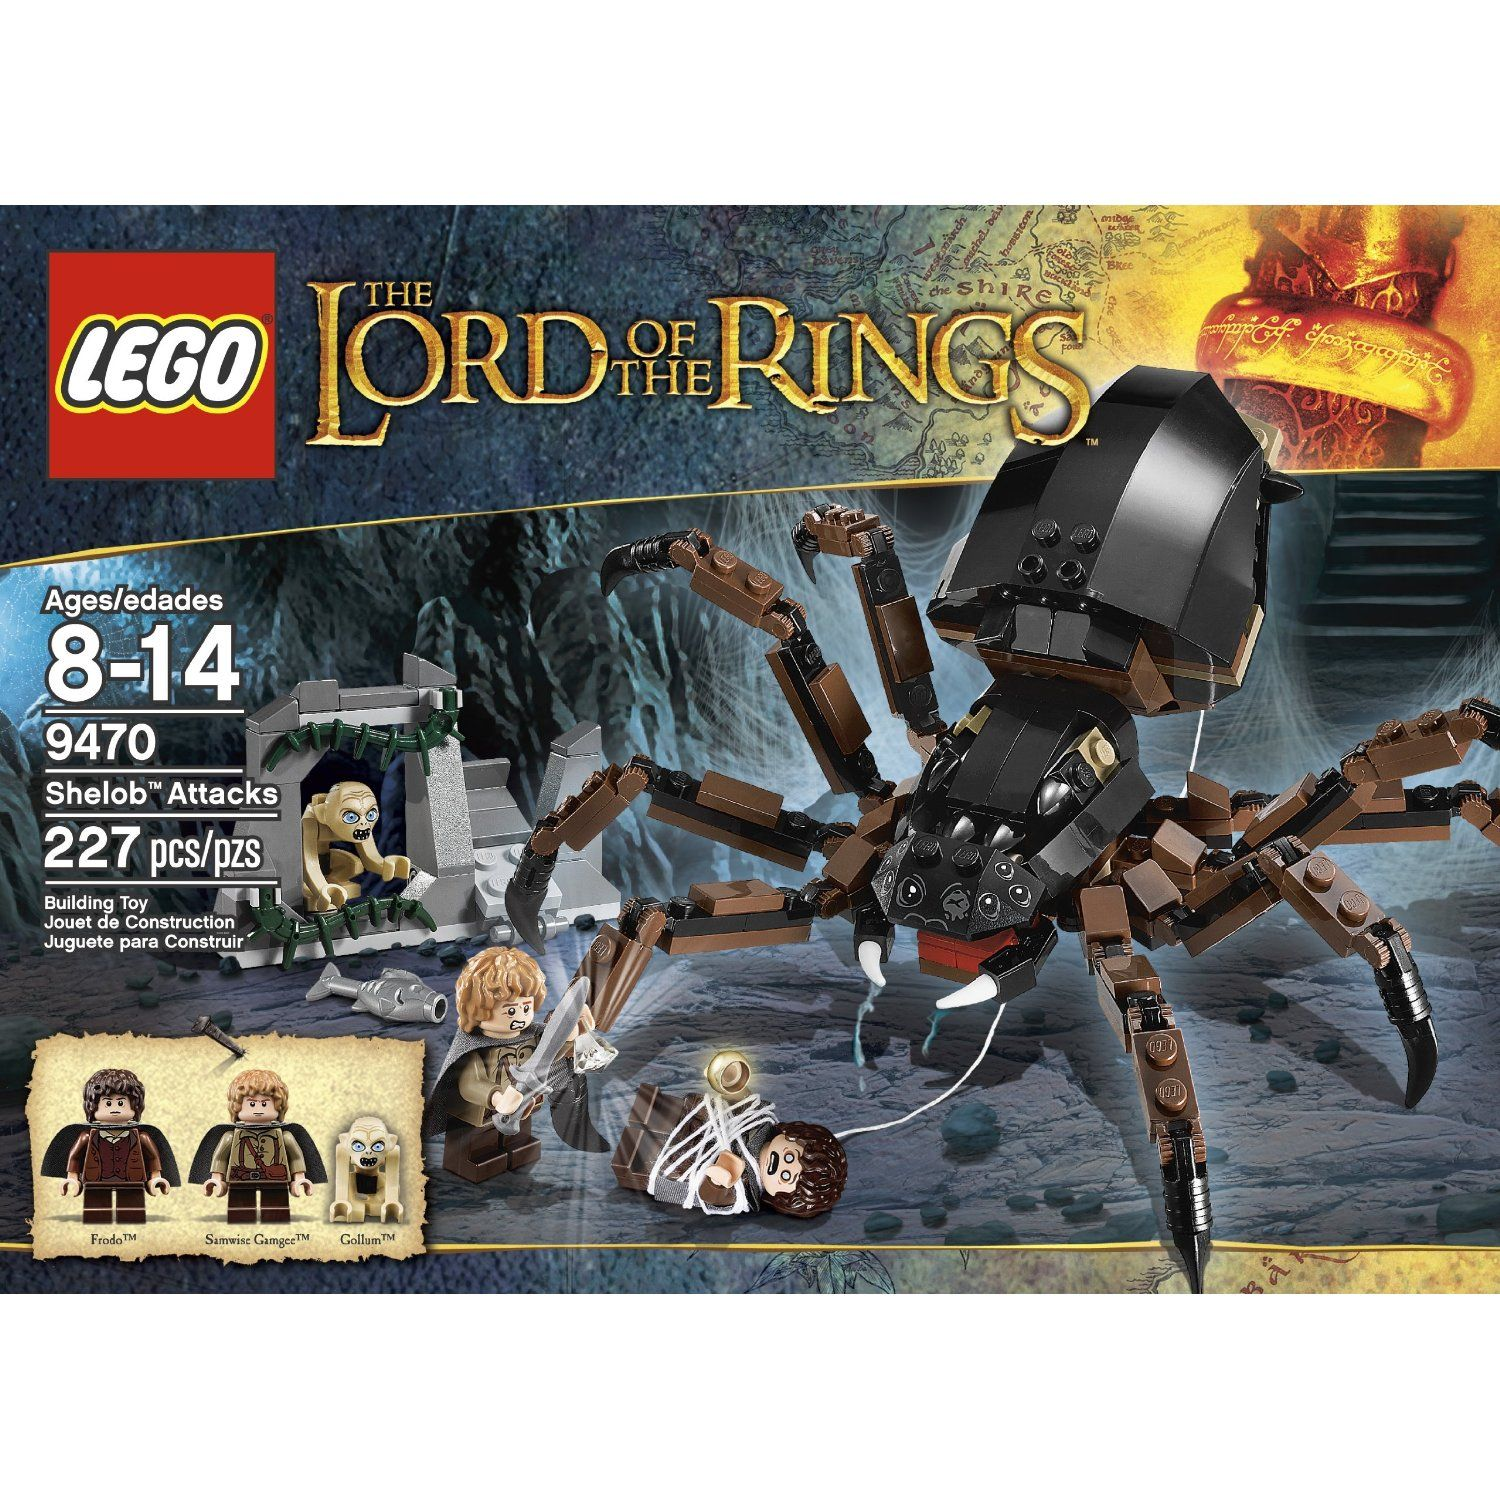 Amazon Com Lego The Lord Of The Rings Hobbit Shelob Attacks 9470